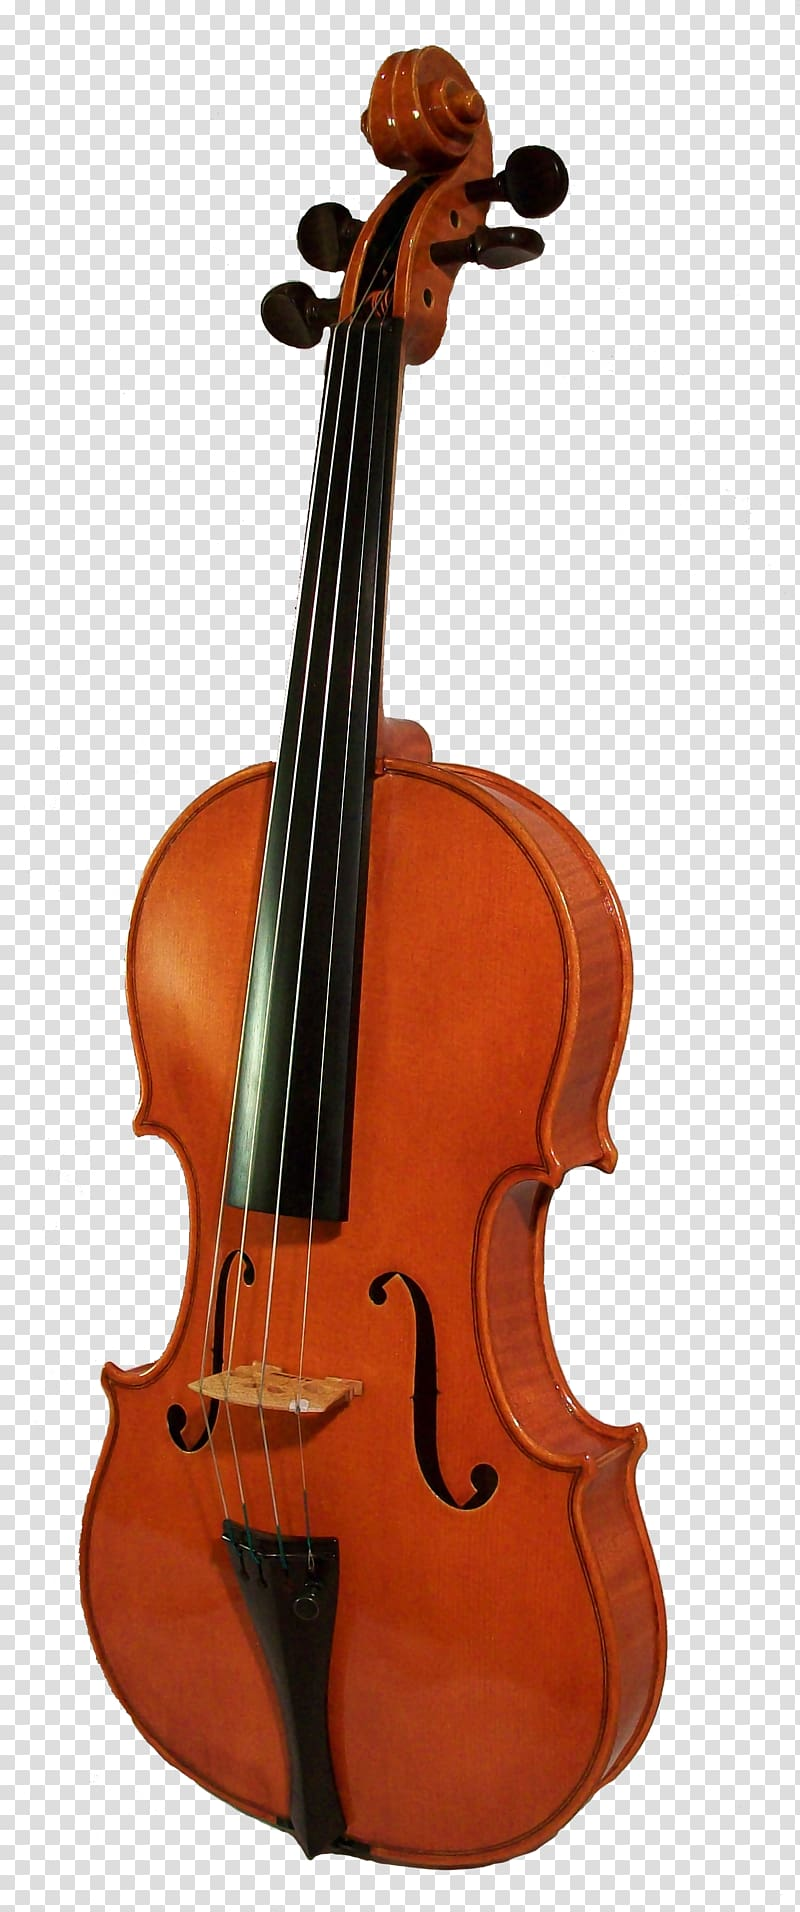 Violin clipart png banner transparent library Violin Cello Musical instrument, Violin transparent ... banner transparent library